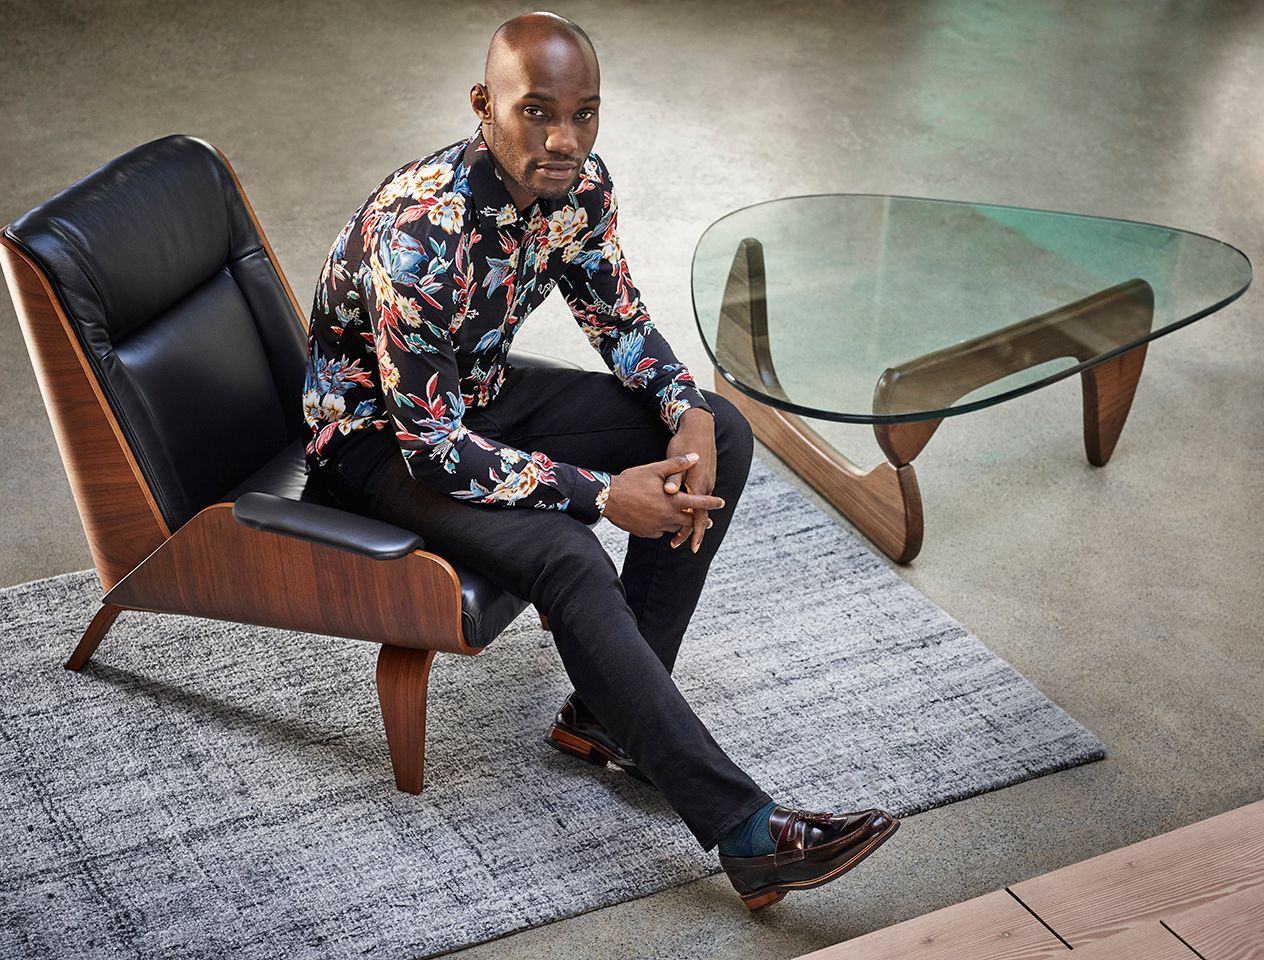 Male model in a floral shirt